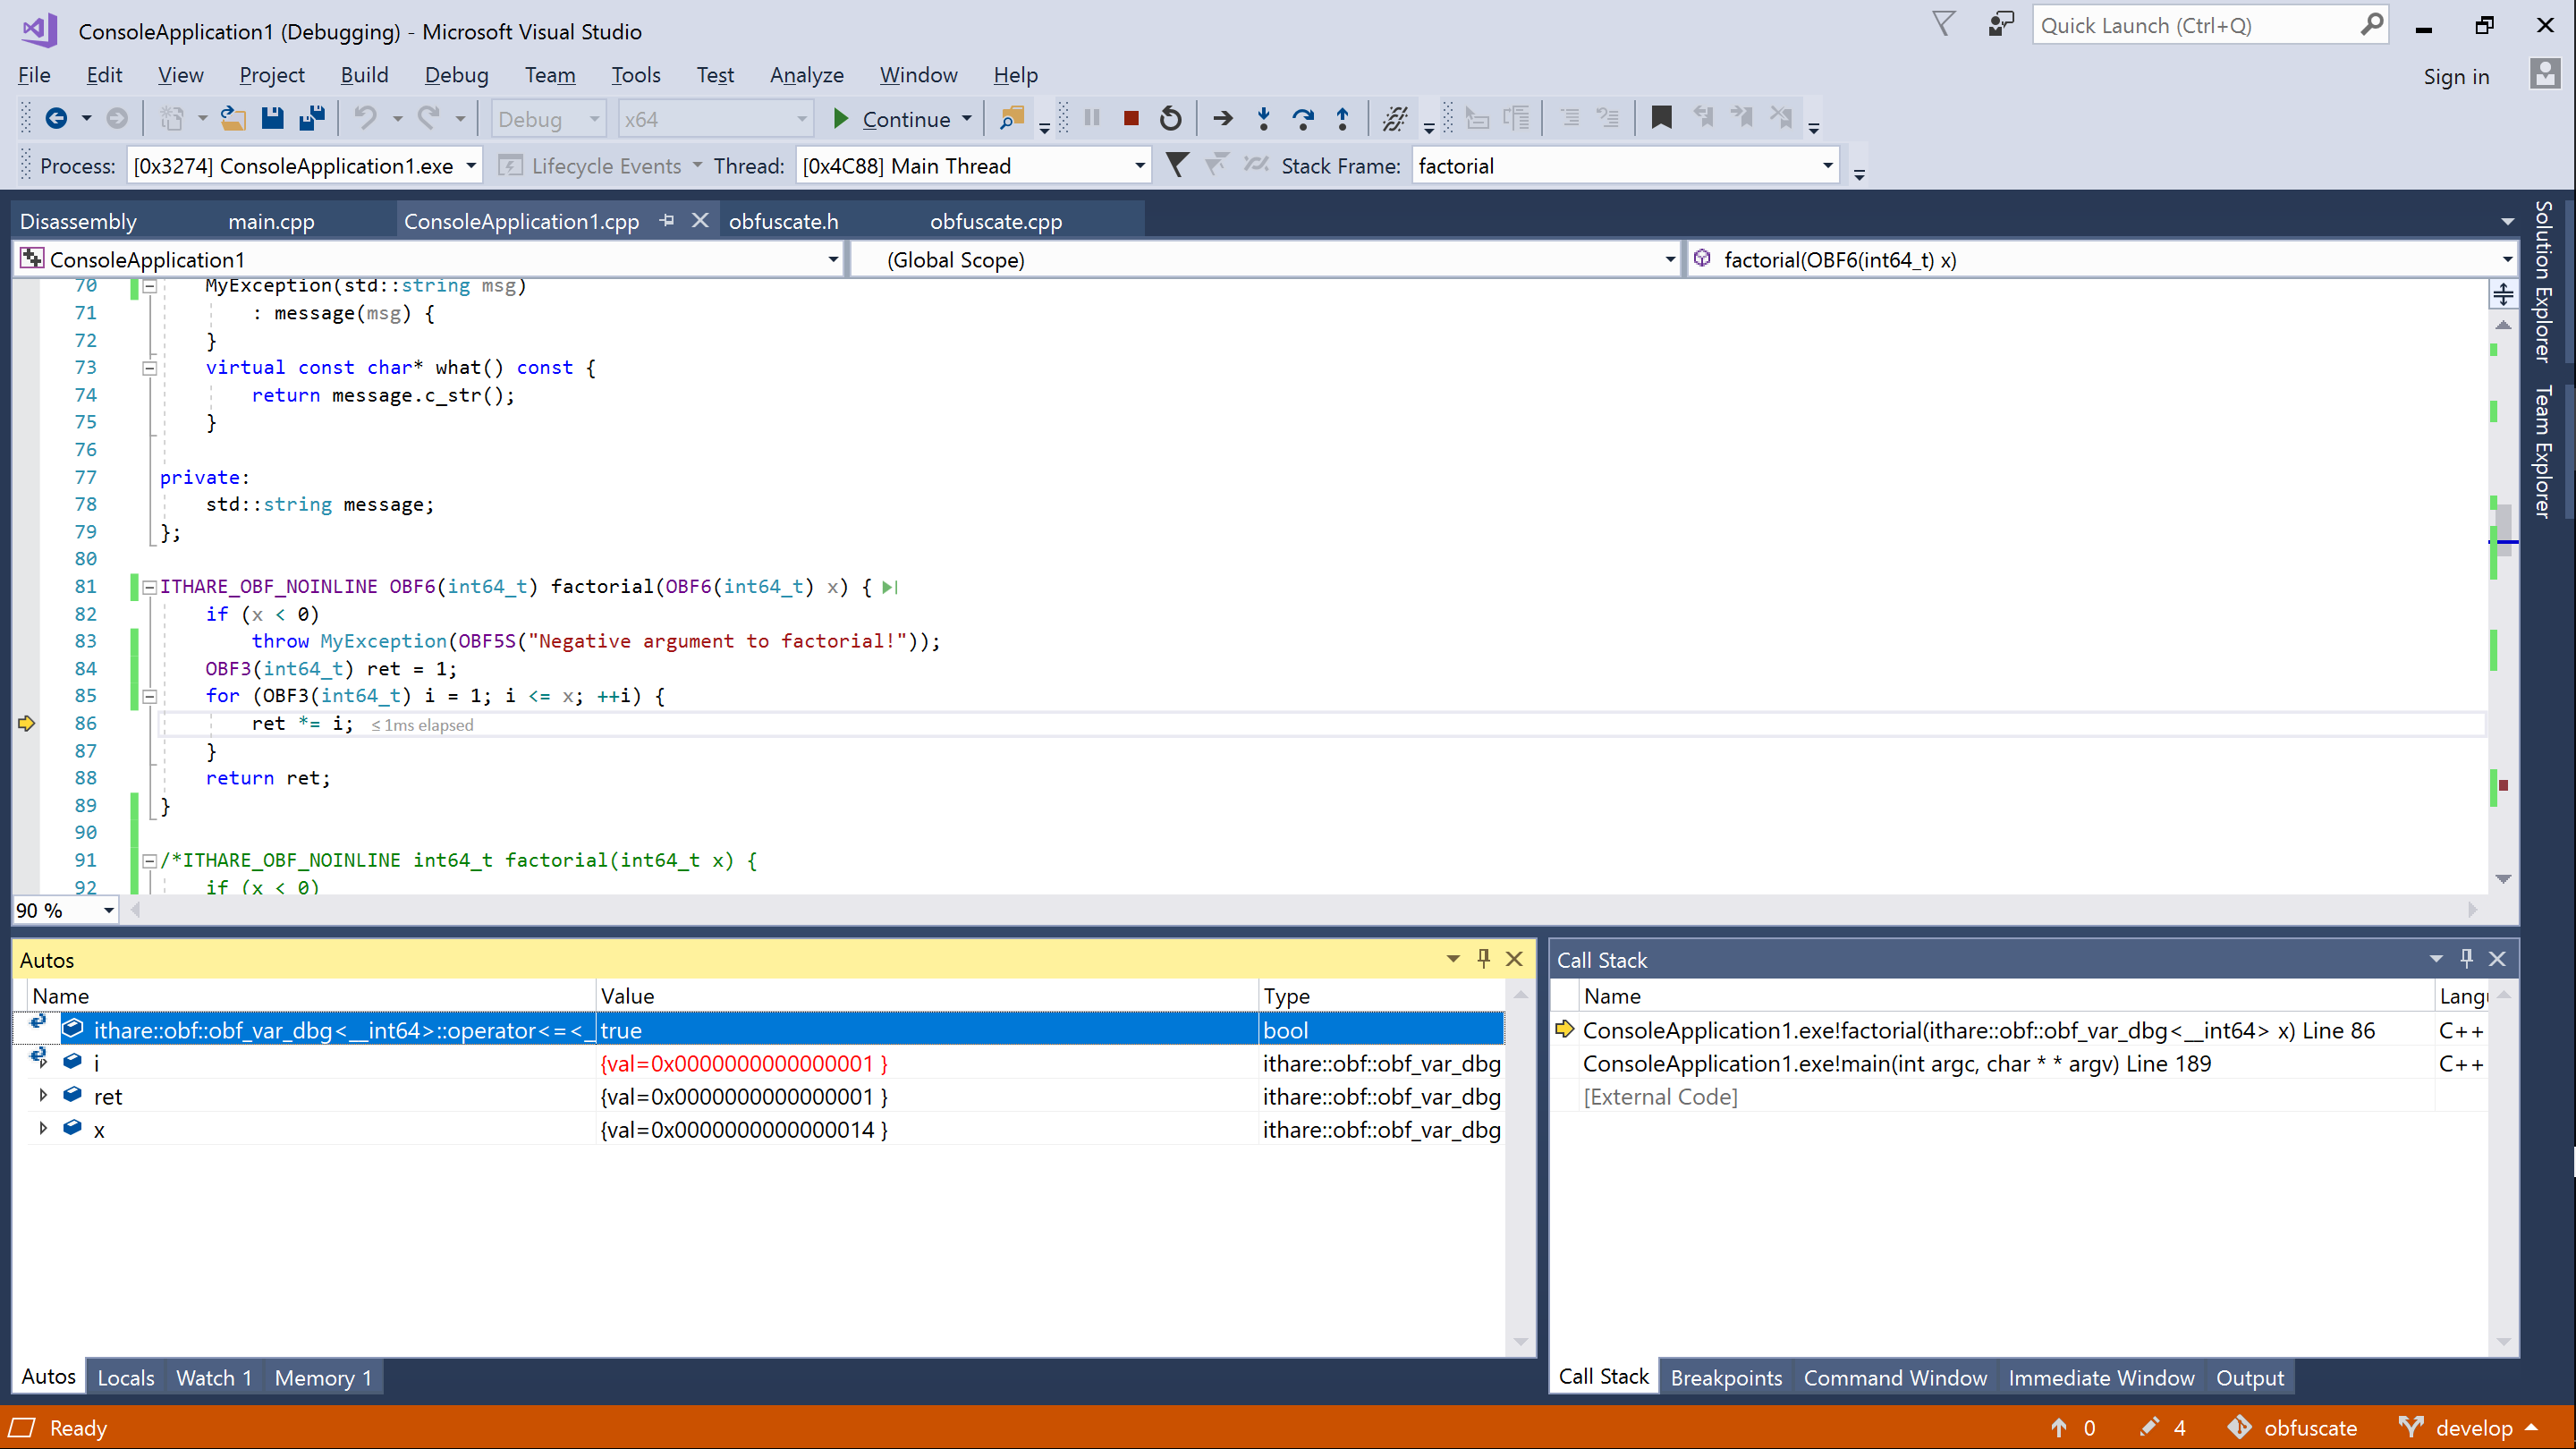 debugging obfuscated code in Visual Studio